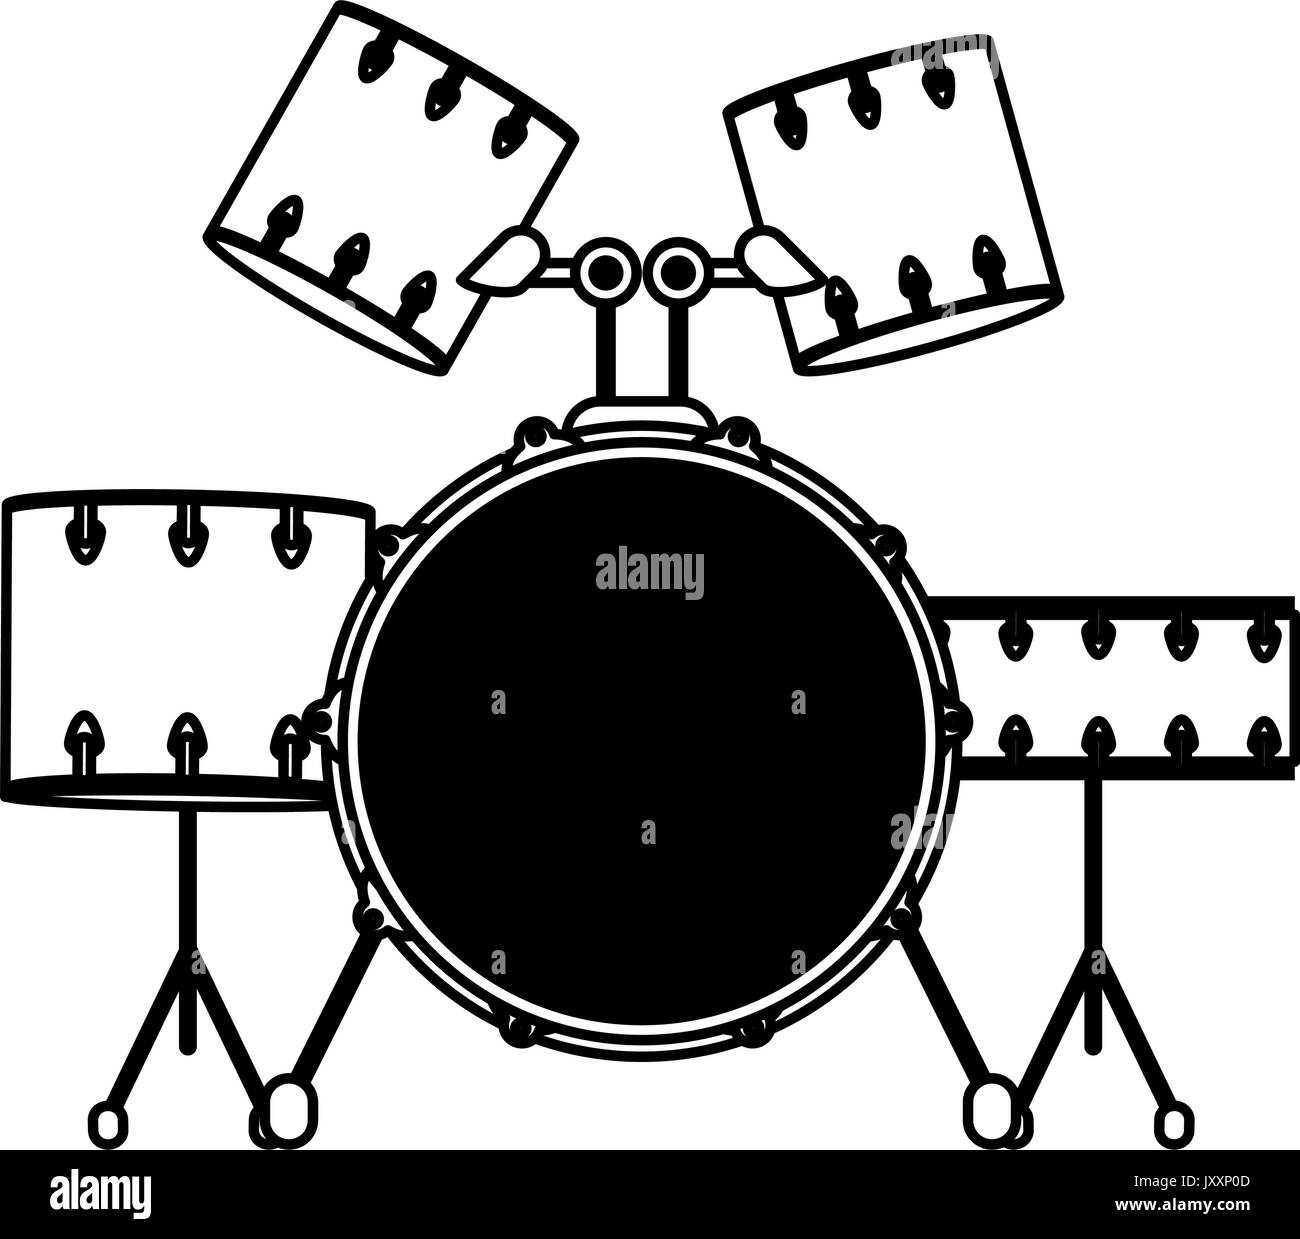 hight resolution of drum set musical instrument icon image stock image